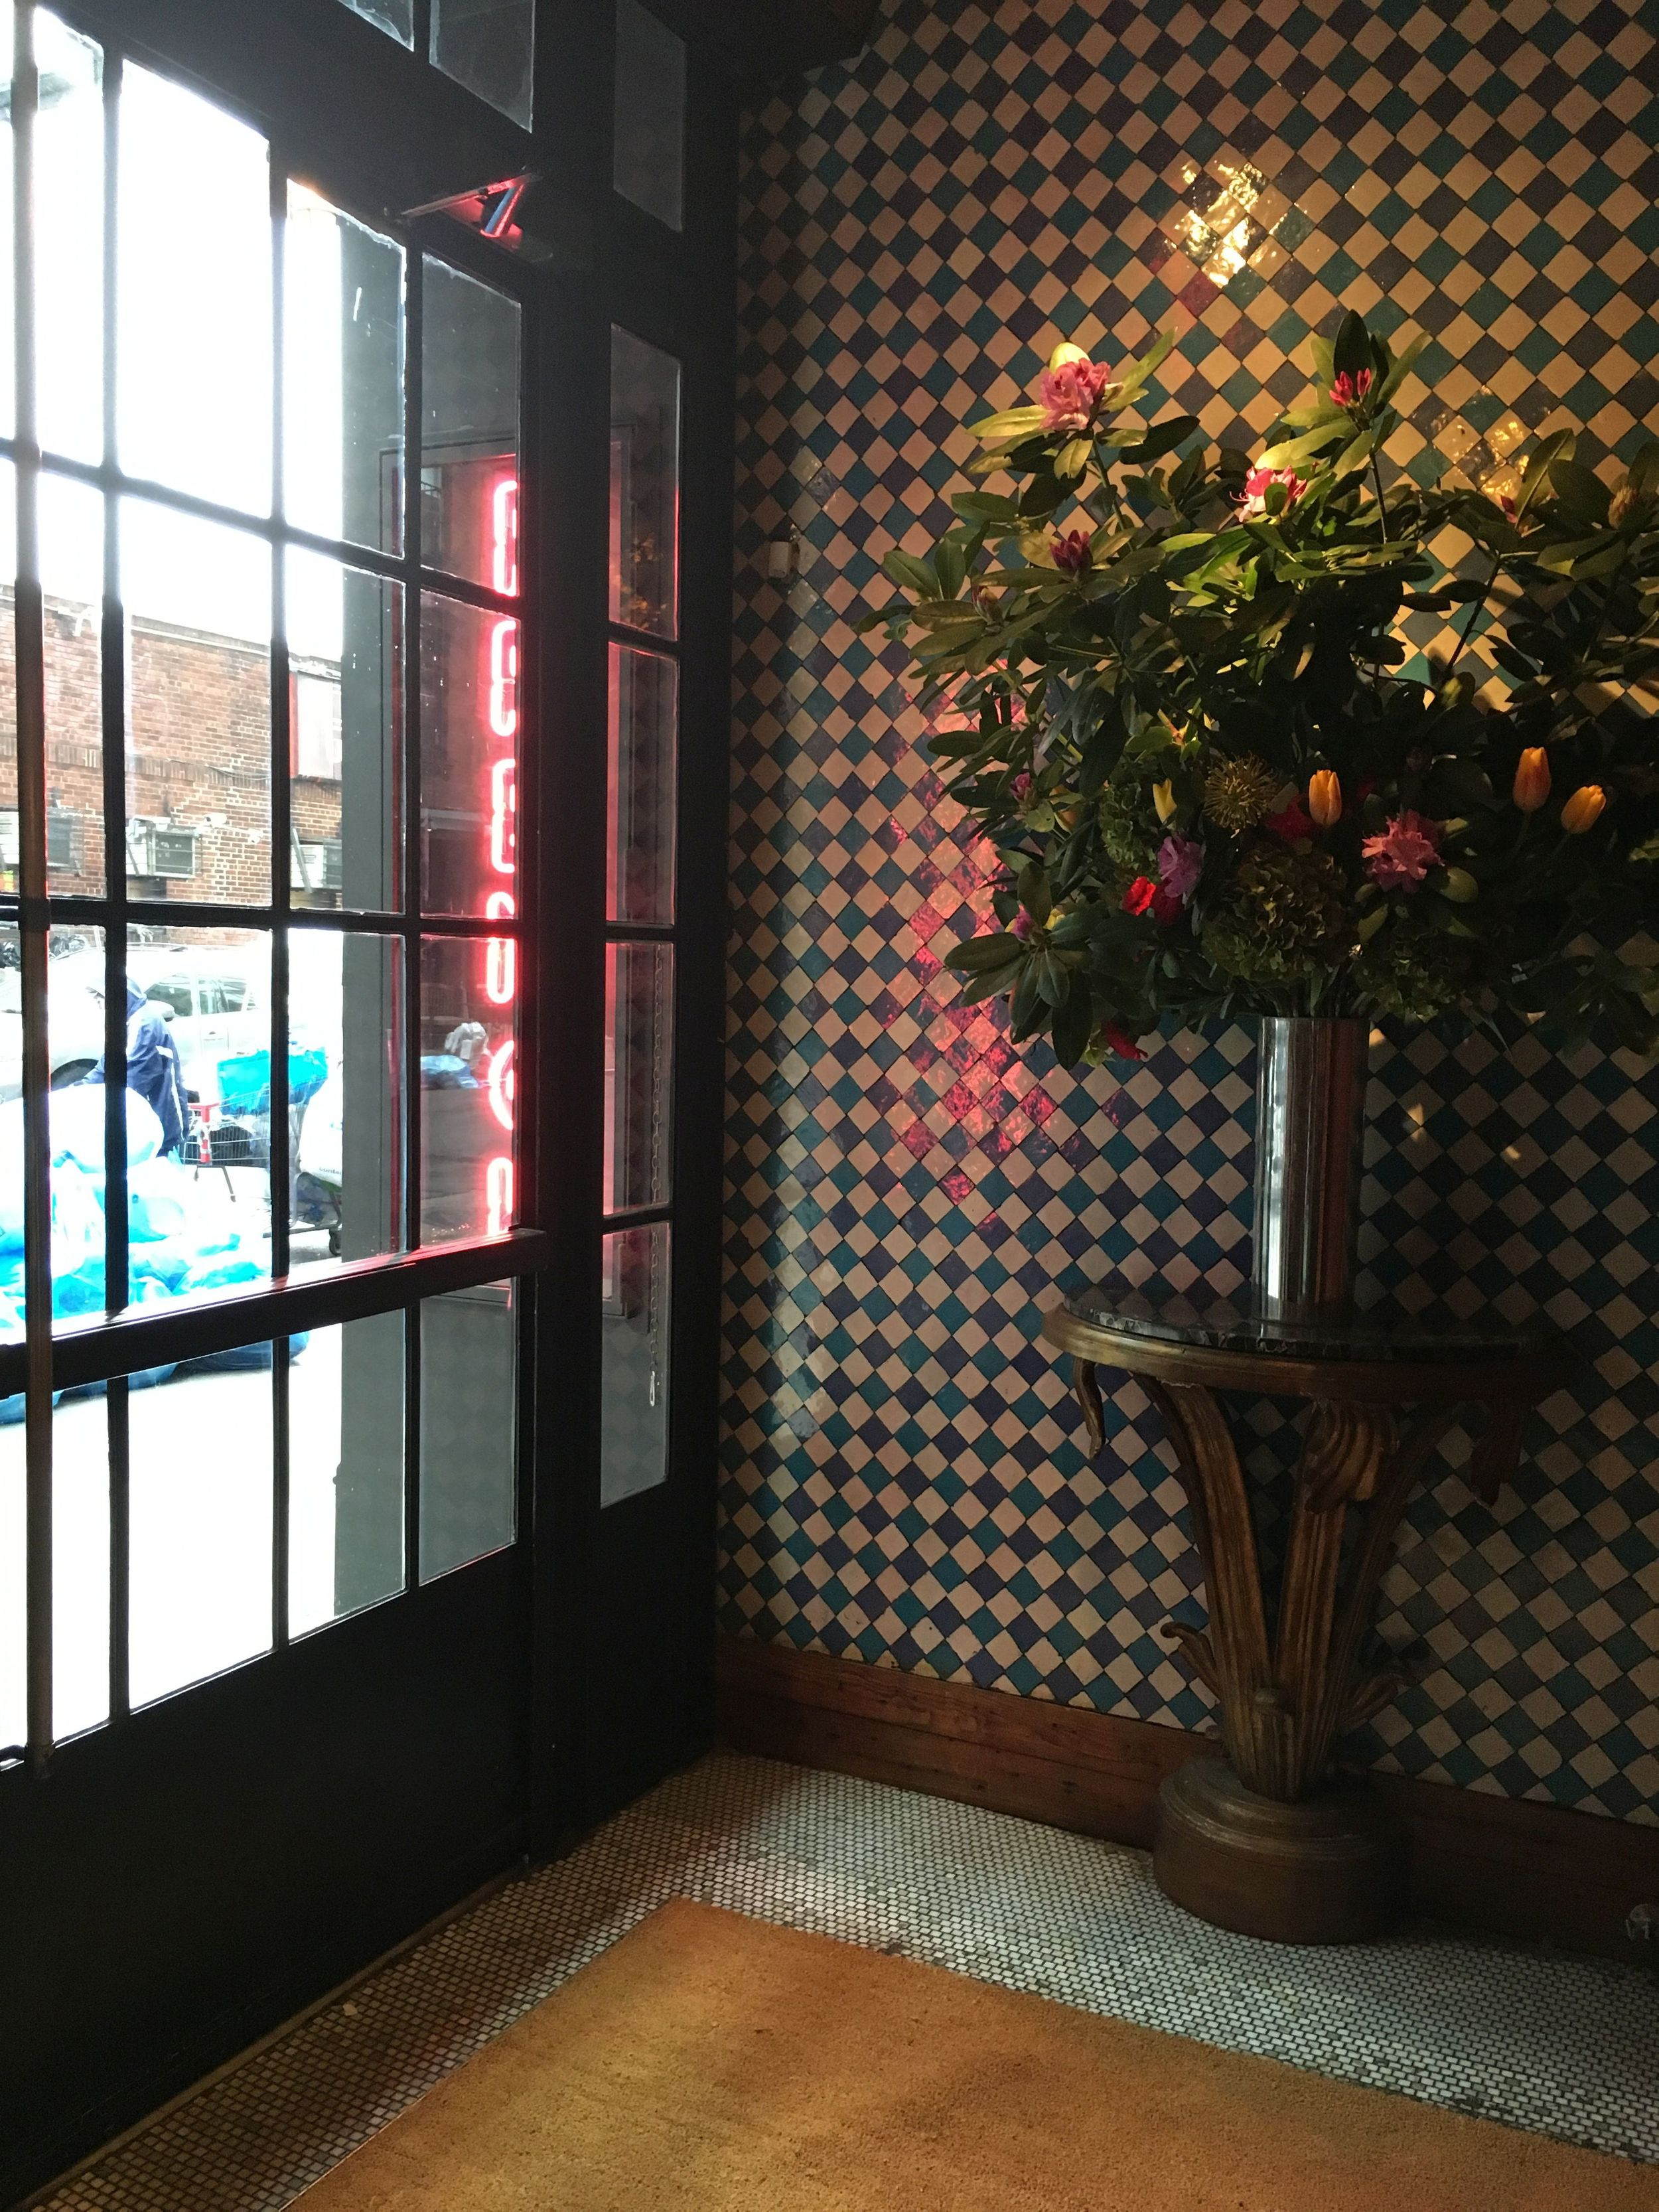 floral arrangement and tile work...